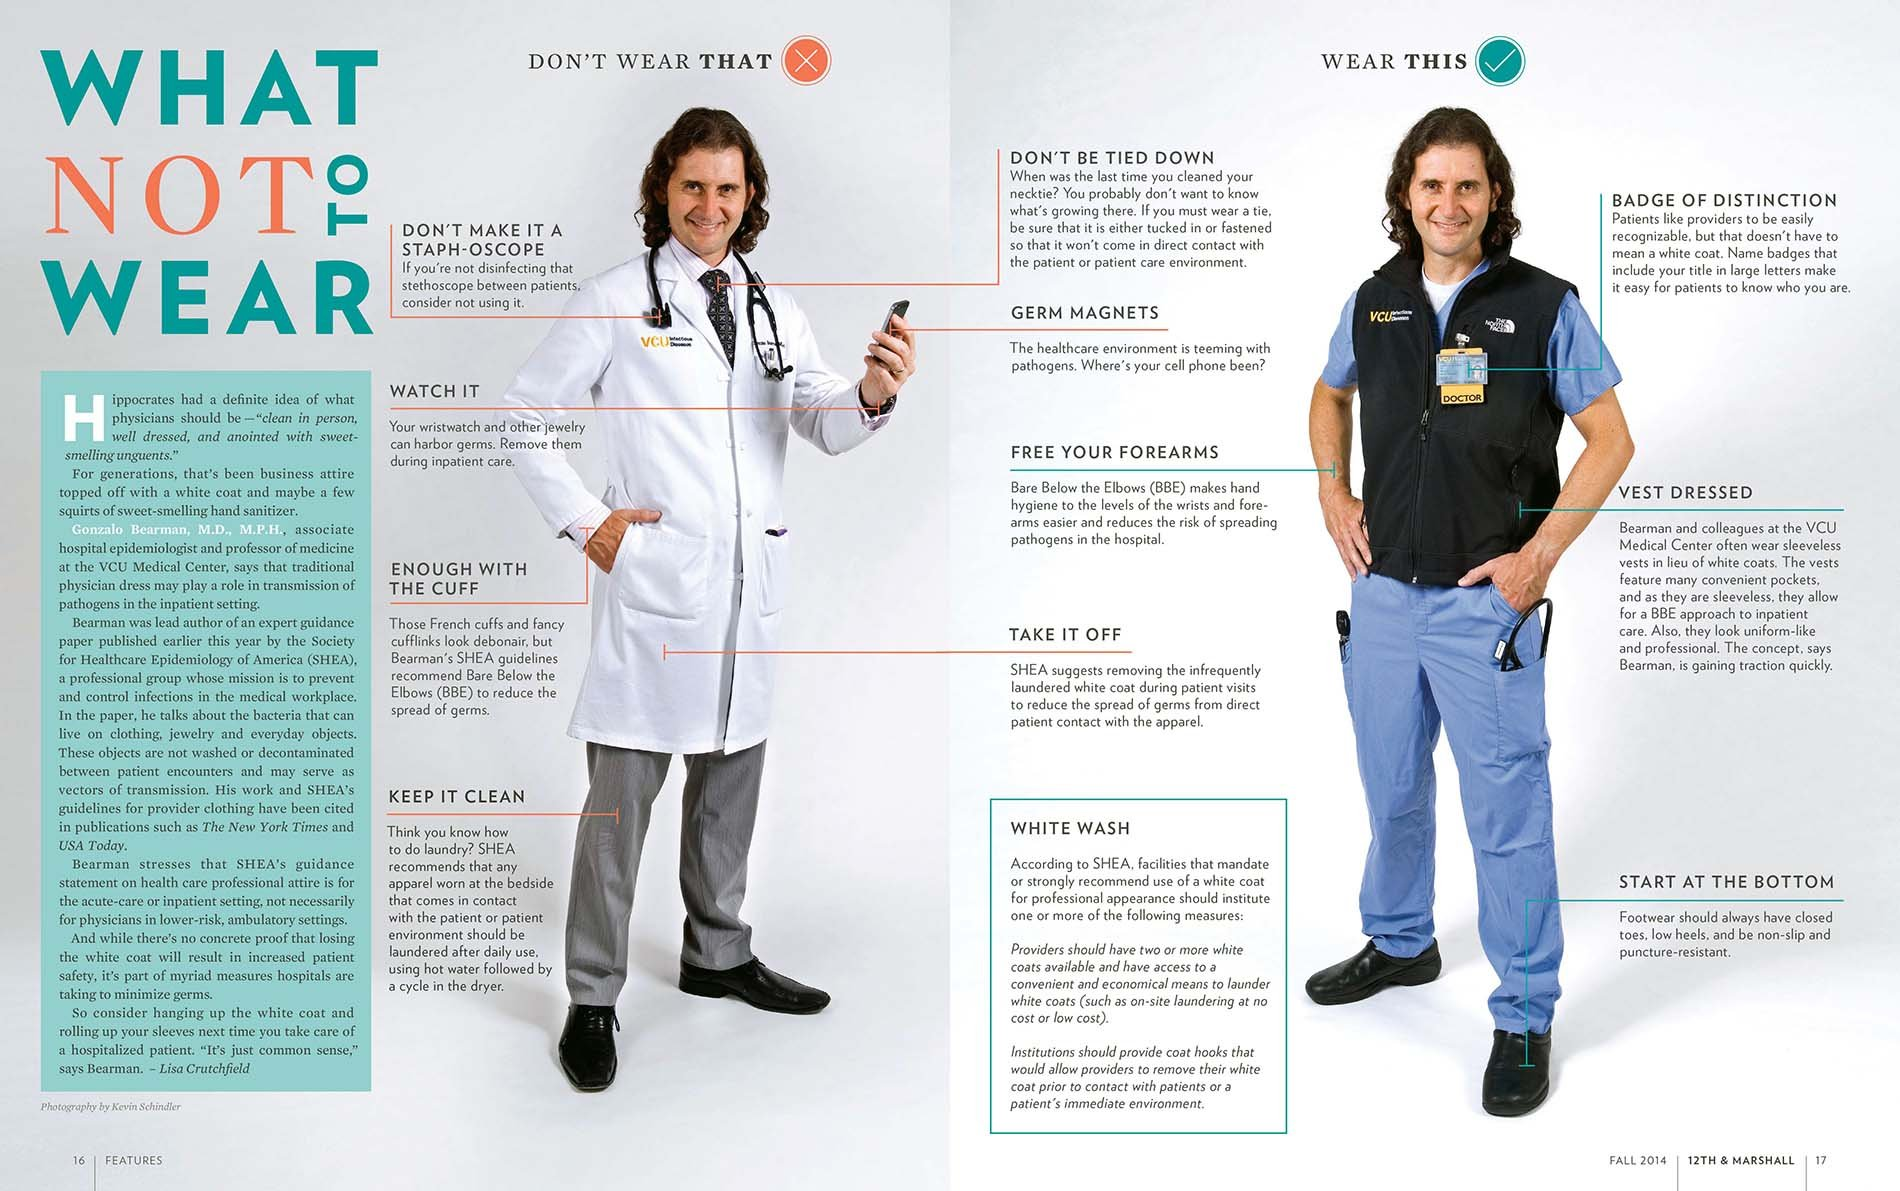 An image of a doctor in two different outfits from Virginia Commonwealth University School of Medicine doctors' guidance